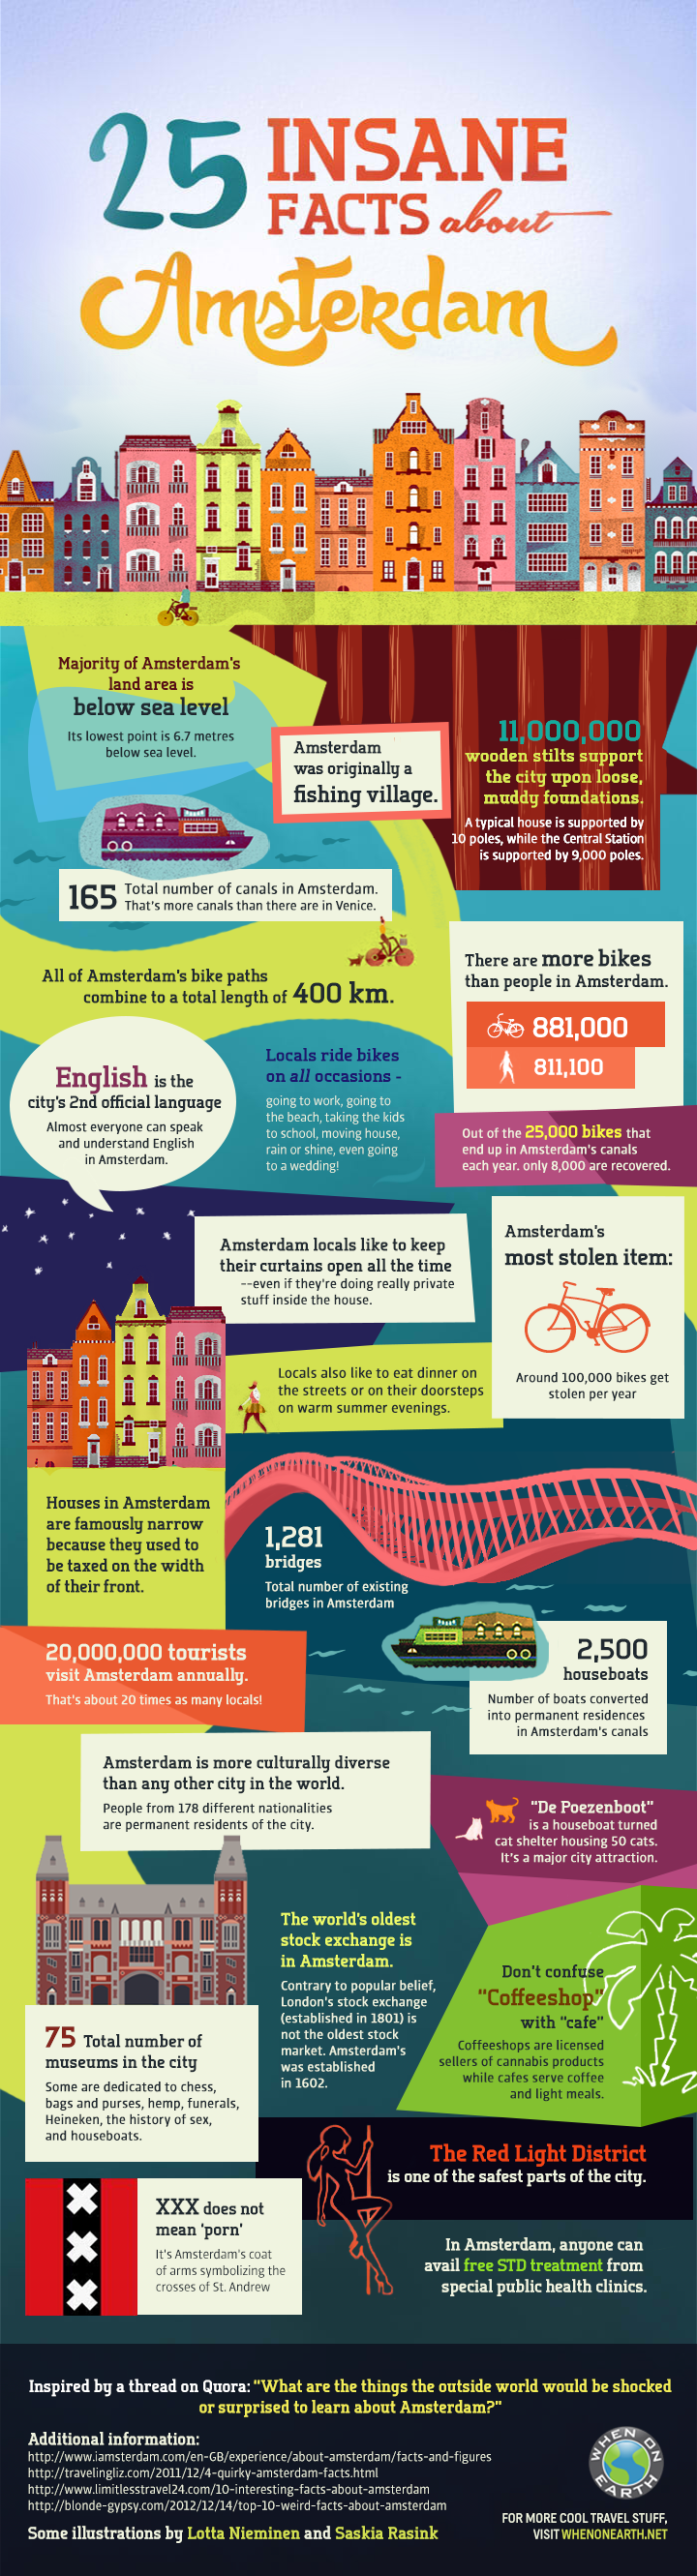 25 Insane Facts About Amsterdam #infographic